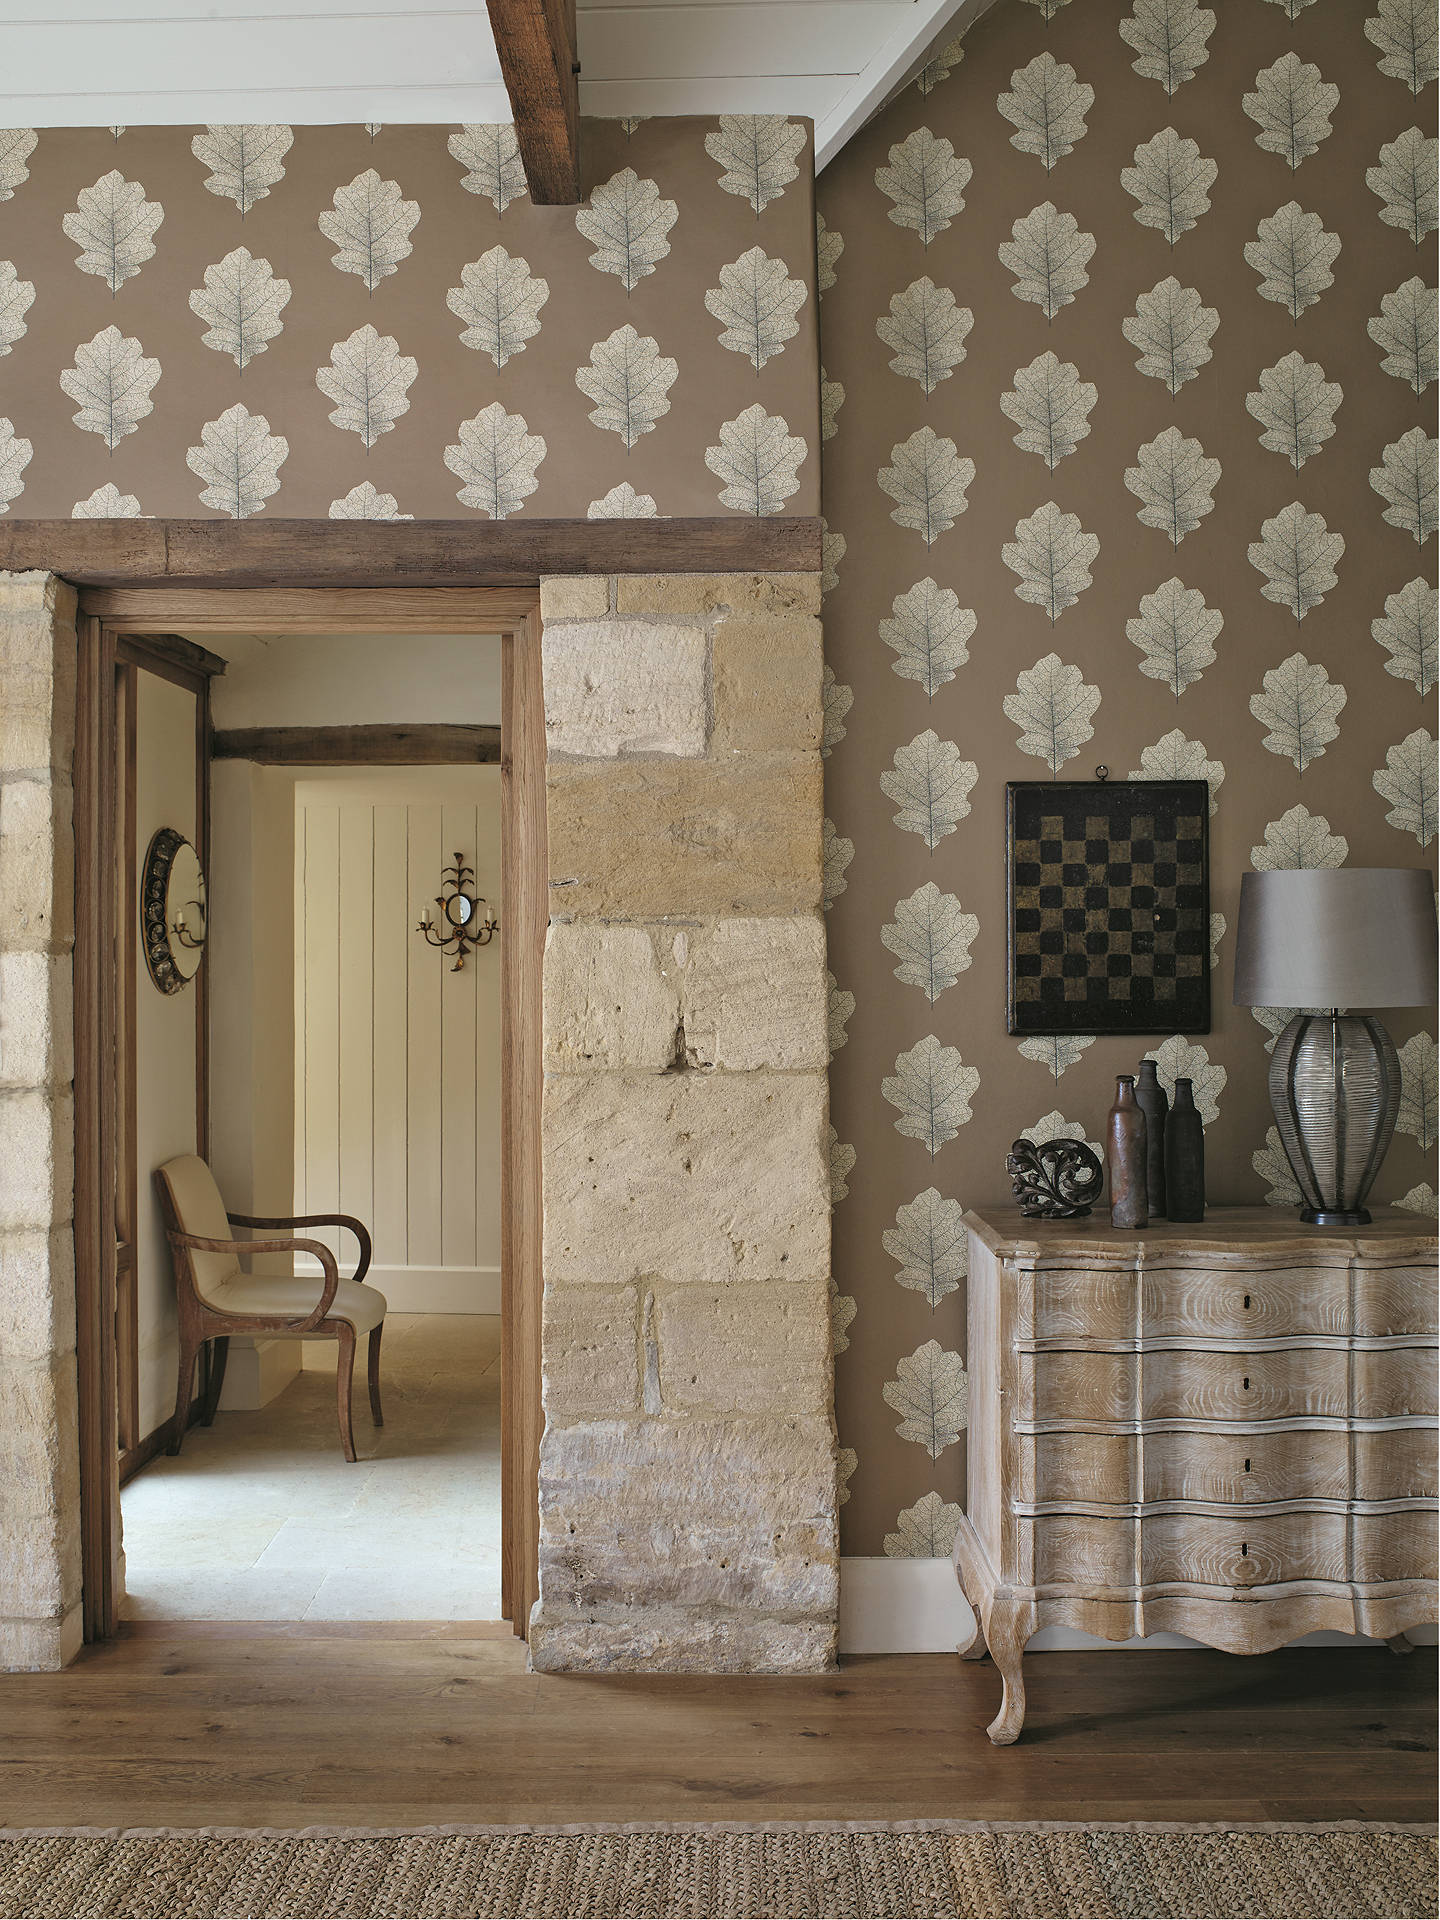 Buy Sanderson Oak Filigree Wallpaper, Copper / Graphite DWOW215701 Online at johnlewis.com